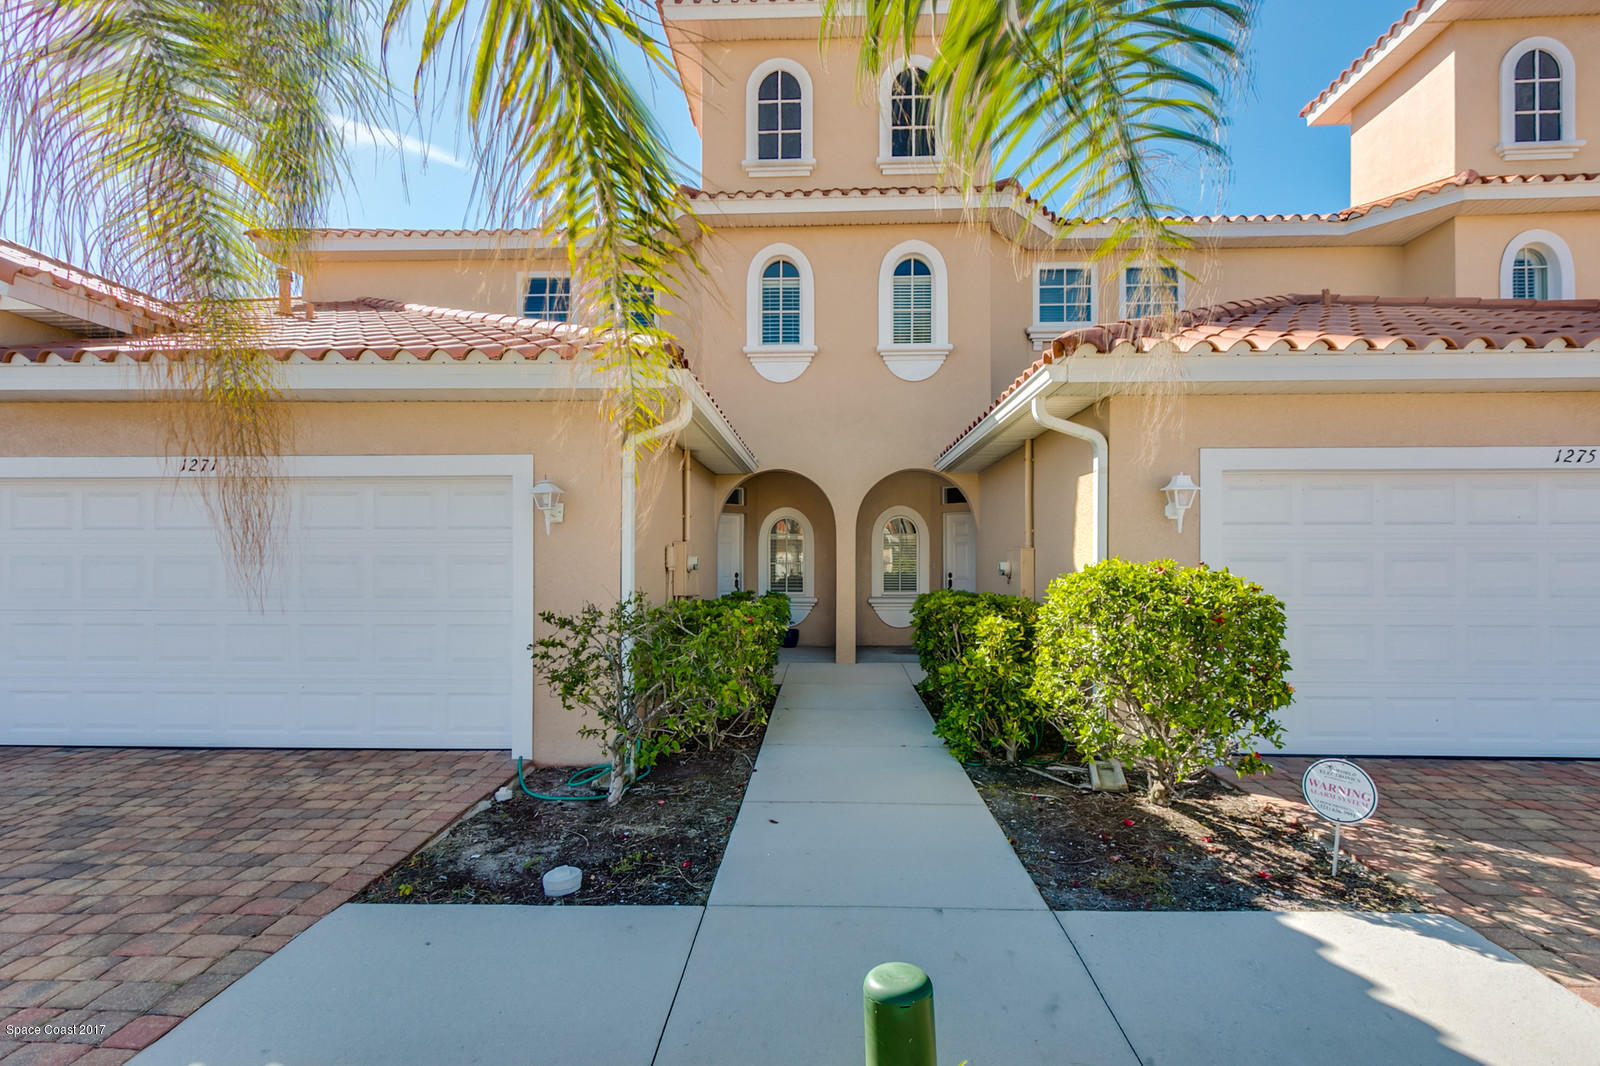 Single Family Home for Sale at 1271 Etruscan 1271 Etruscan Indian Harbour Beach, Florida 32937 United States